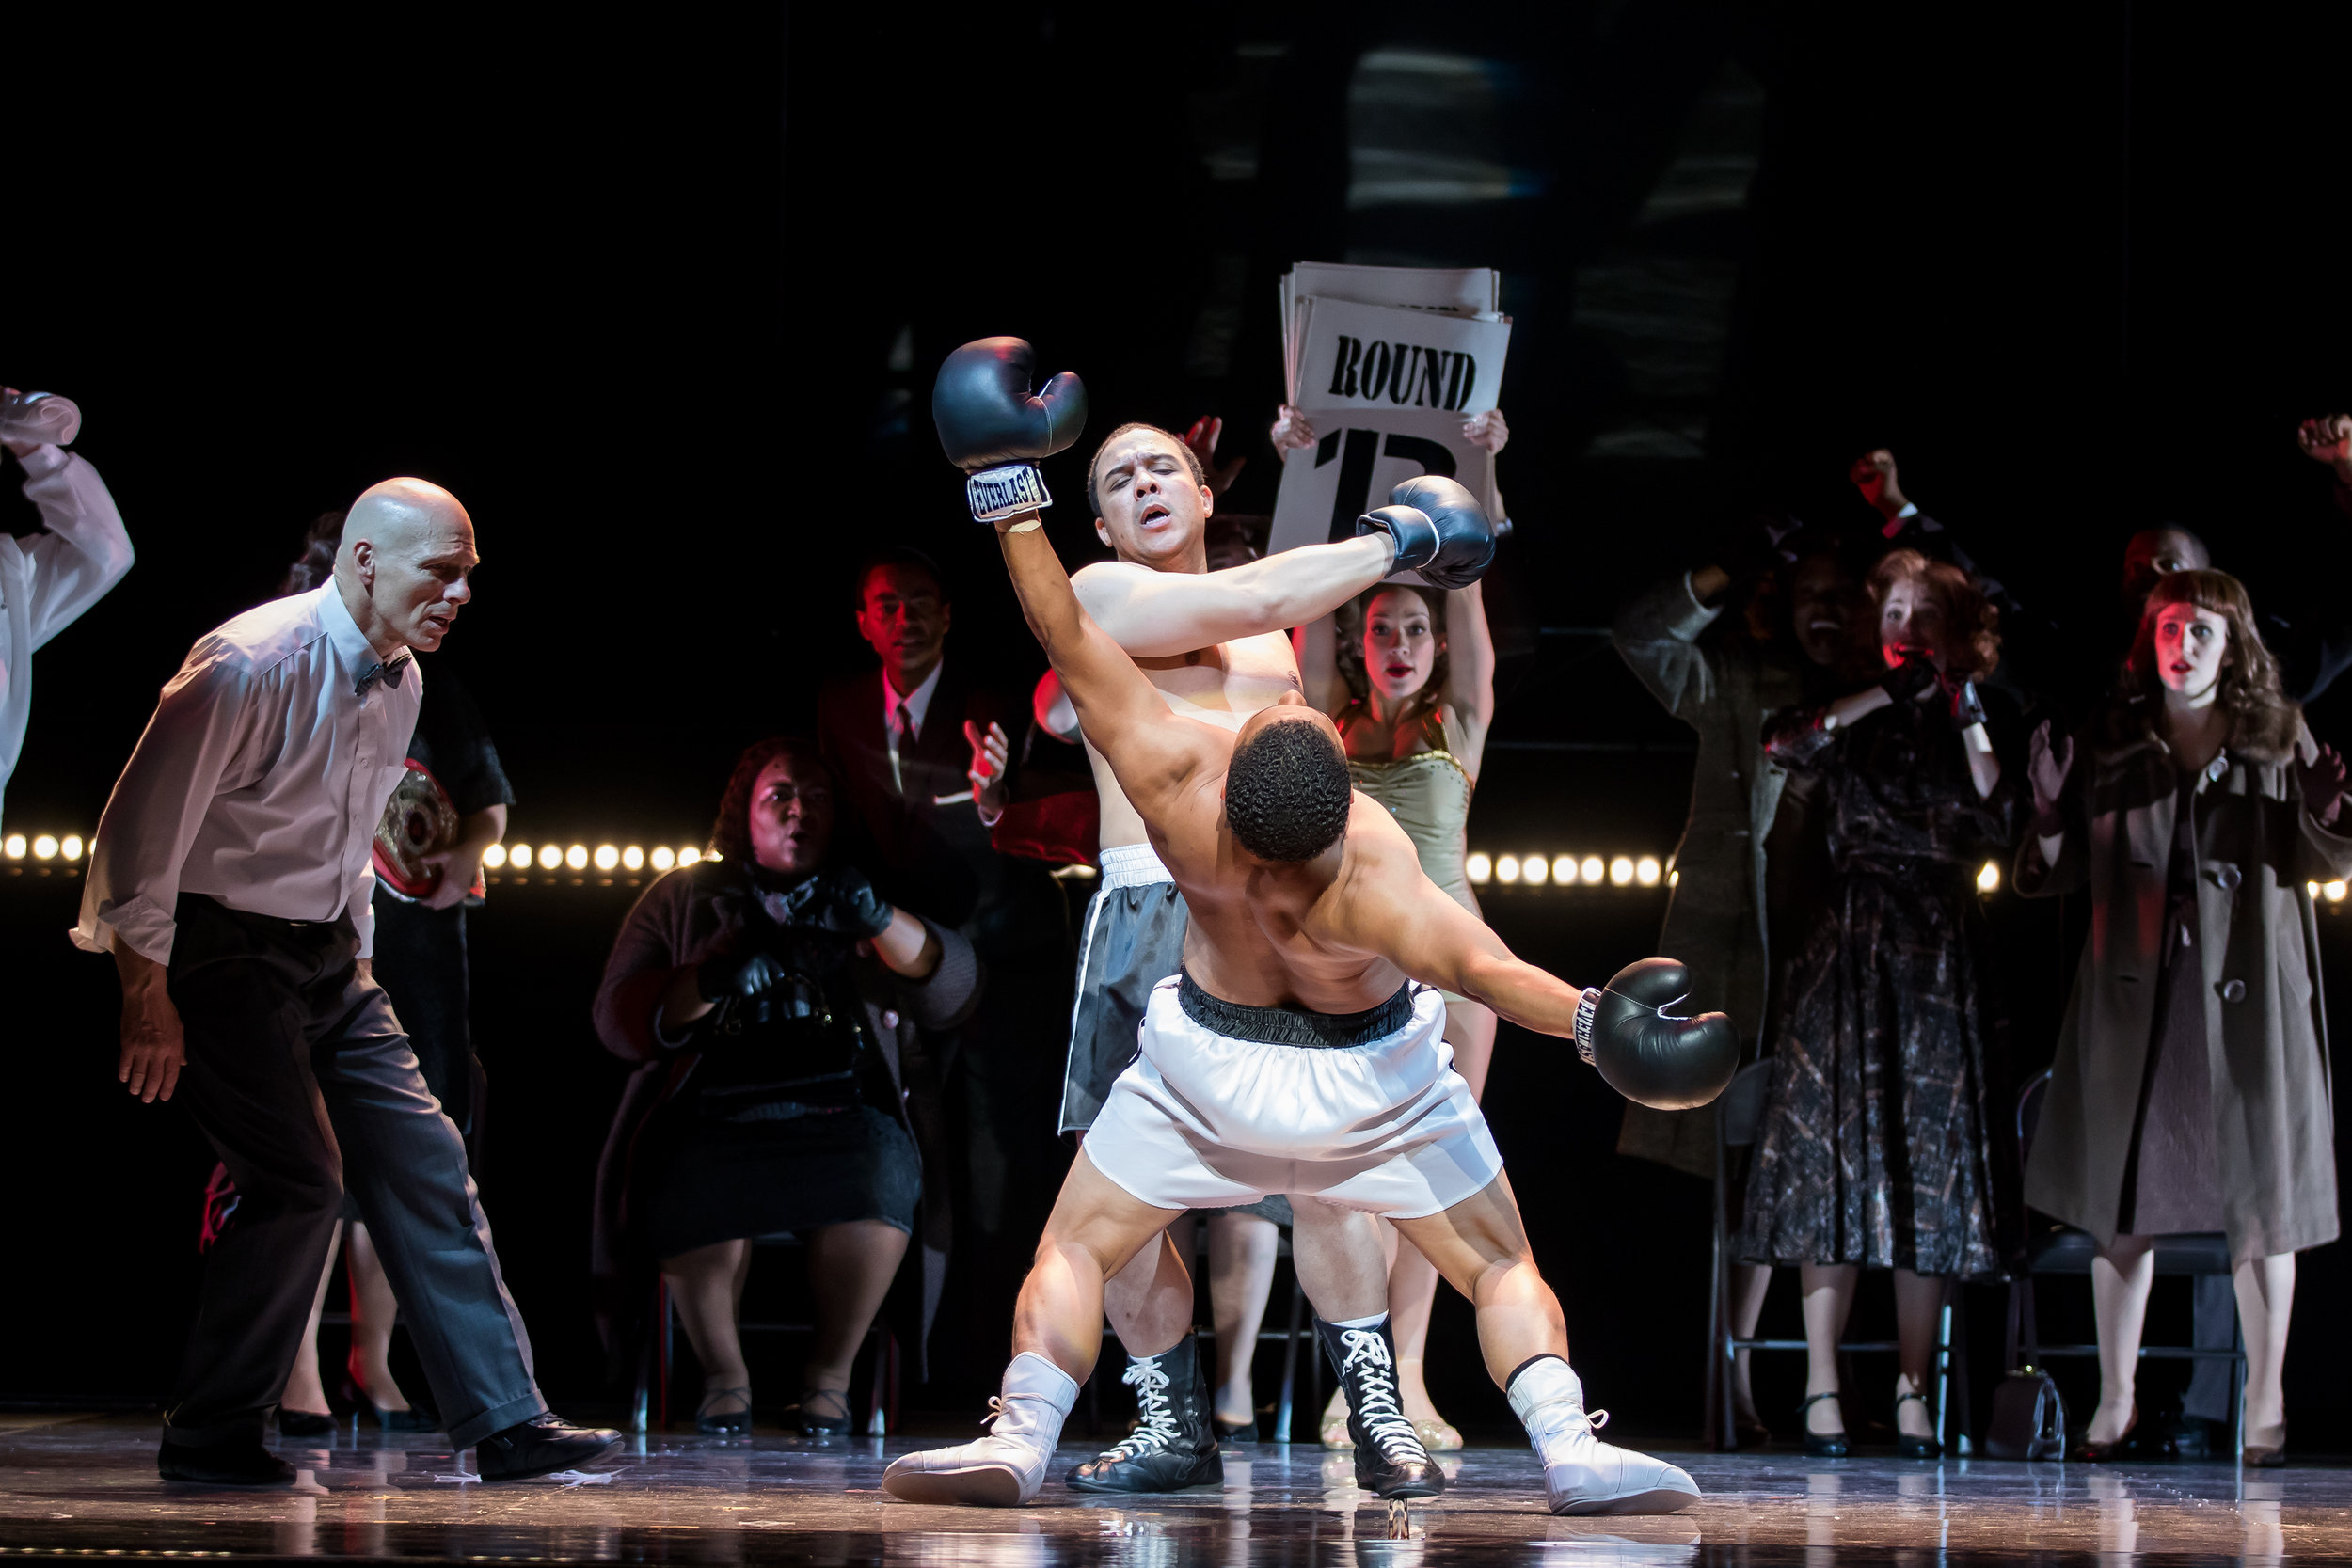 Griffith, Aubrey Allicock, knocking Paret, Victor Ryan Robertson, out. Photo by Scott Suchman and courtesy of Washington National Opera.